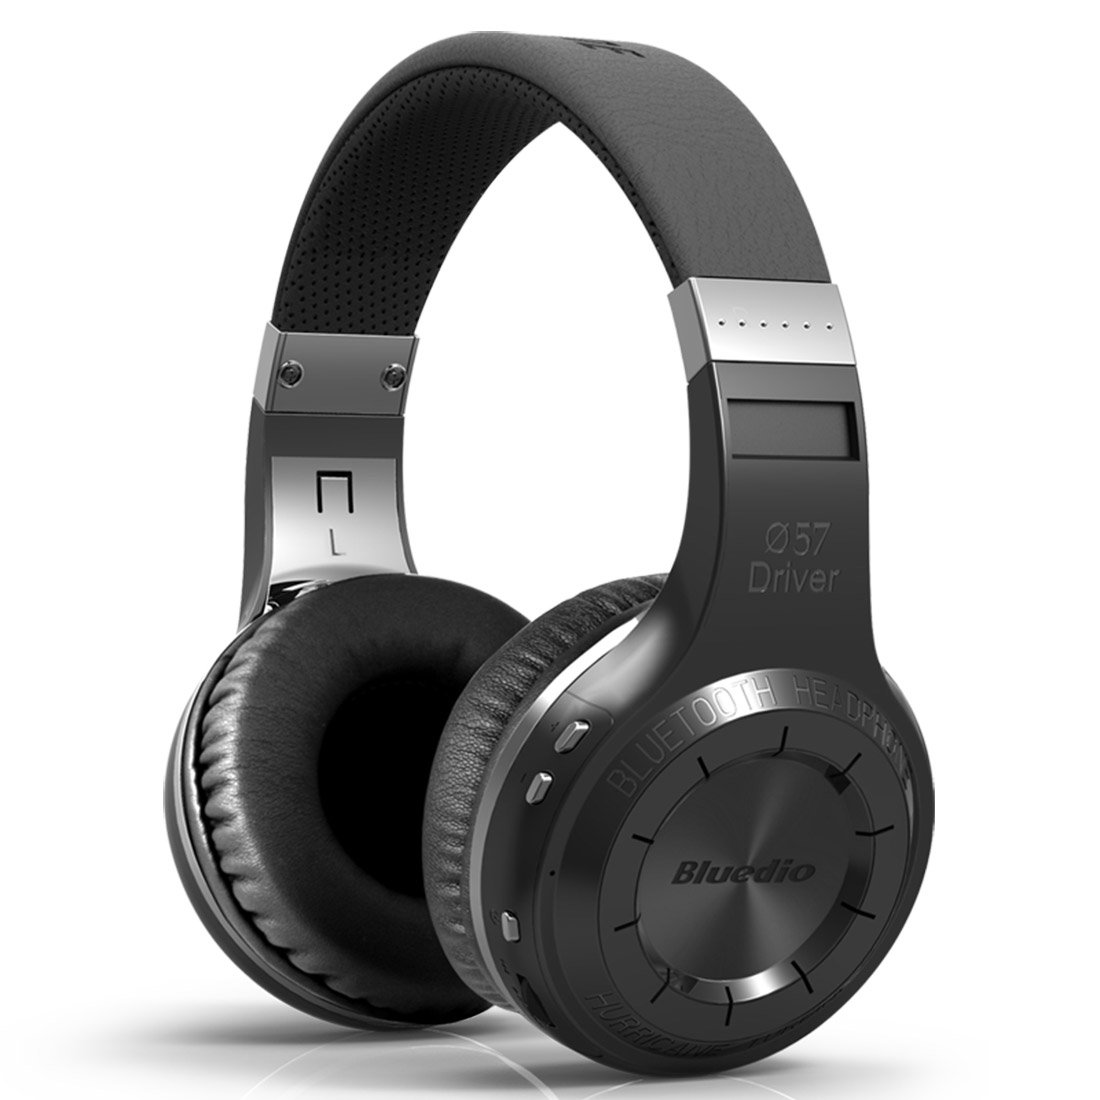 Bluedio HT Turbine Wireless Bluetooth 4.1 Stereo Headphones with Mic (Black)